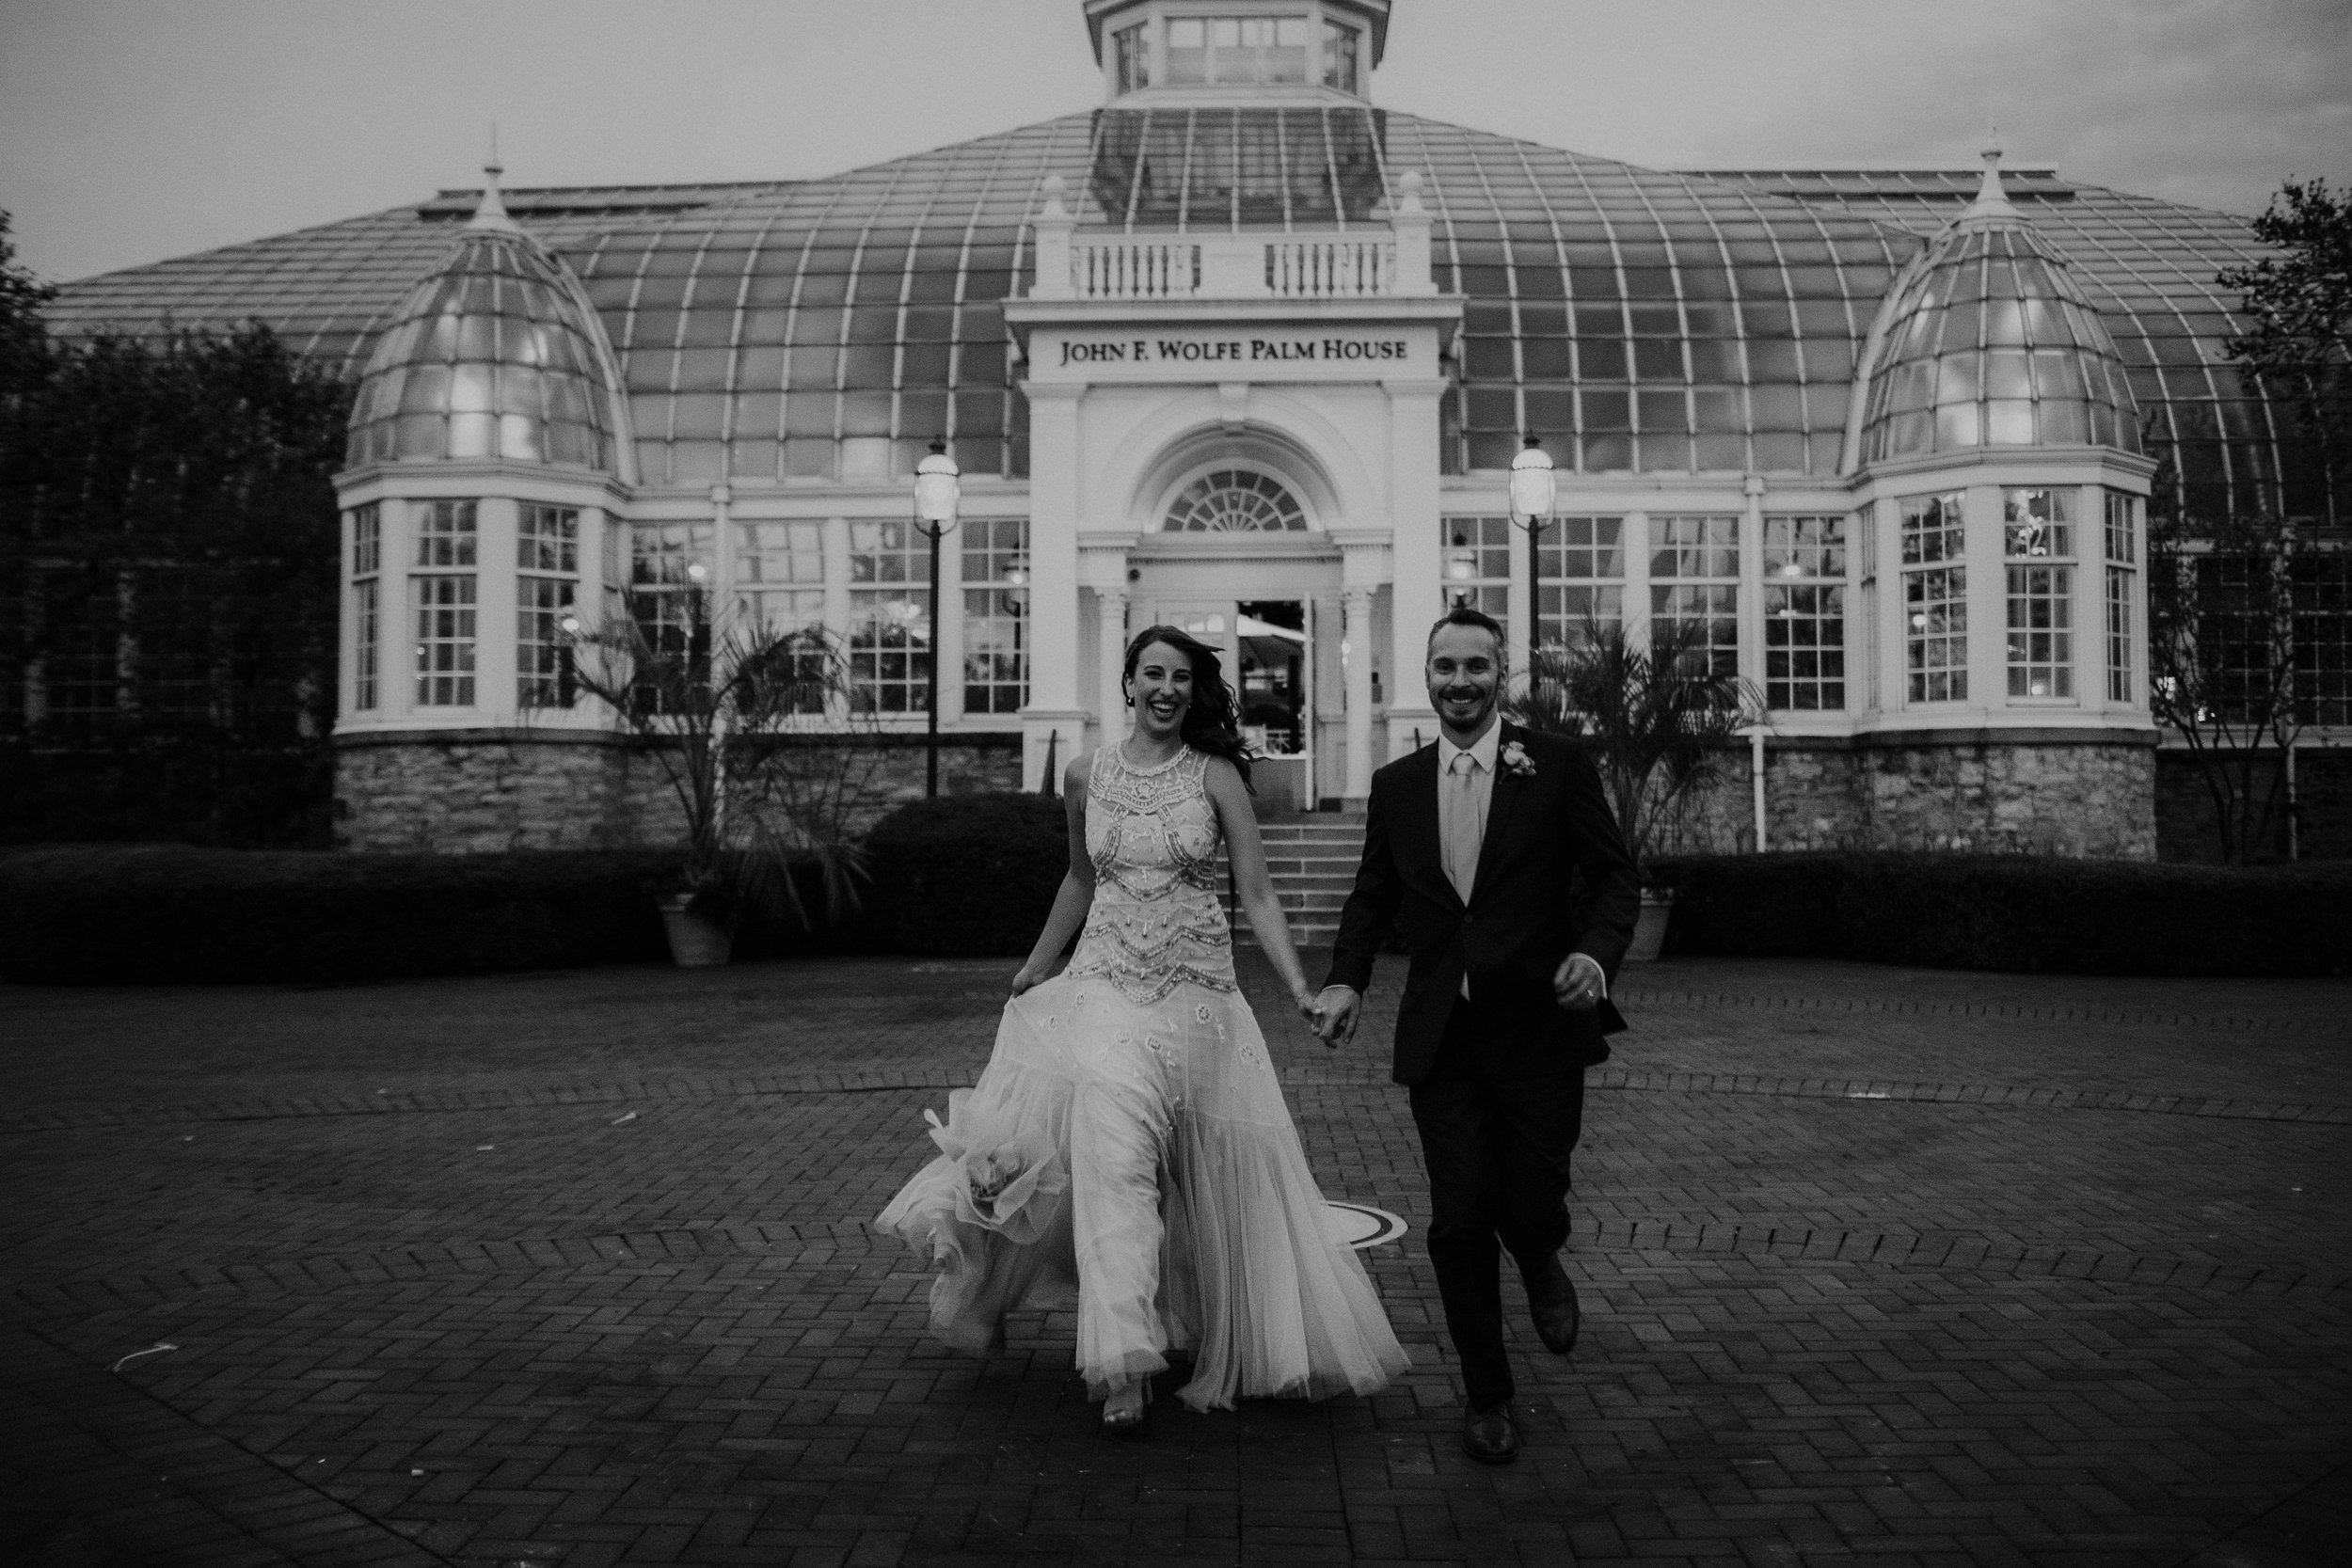 franklin park conservatory wedding columbus ohio wedding photographer grace e jones photography85.jpg